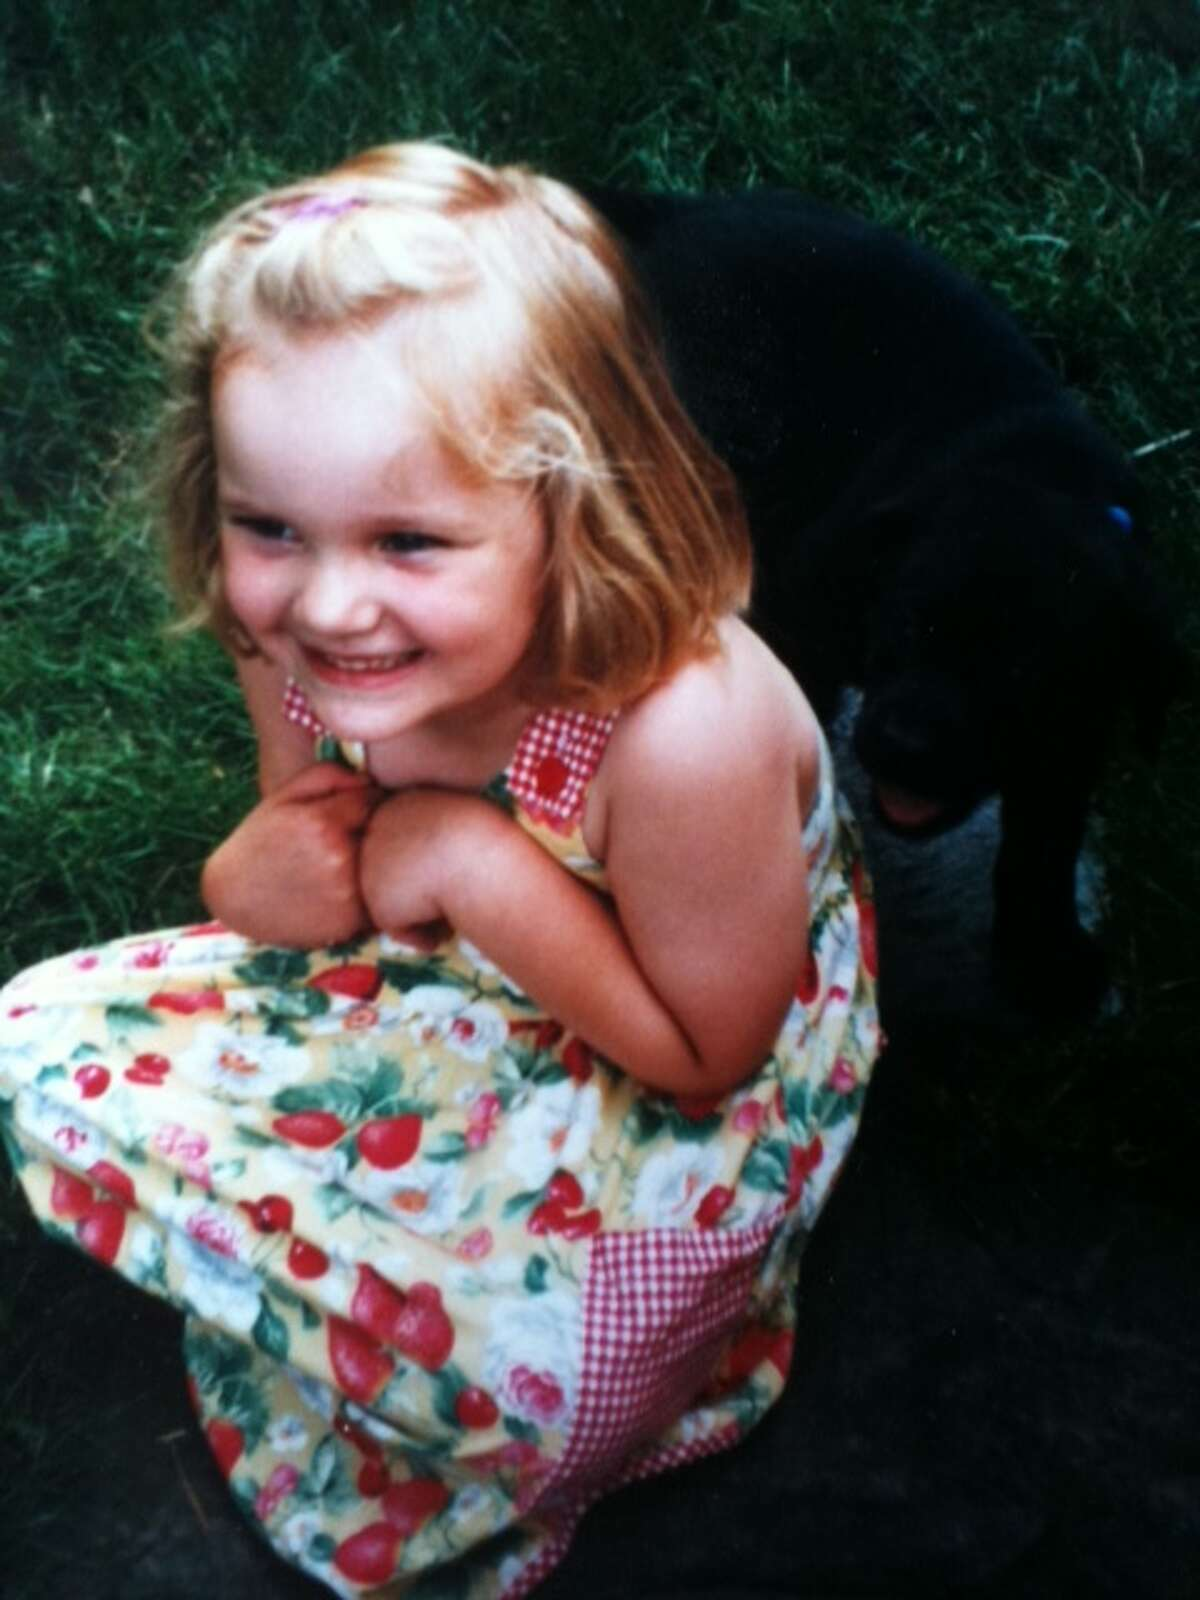 Caroline Grondahl on her 4th birthday, when she got Daisy as a surprise birthday present. (Paul Grondahl)